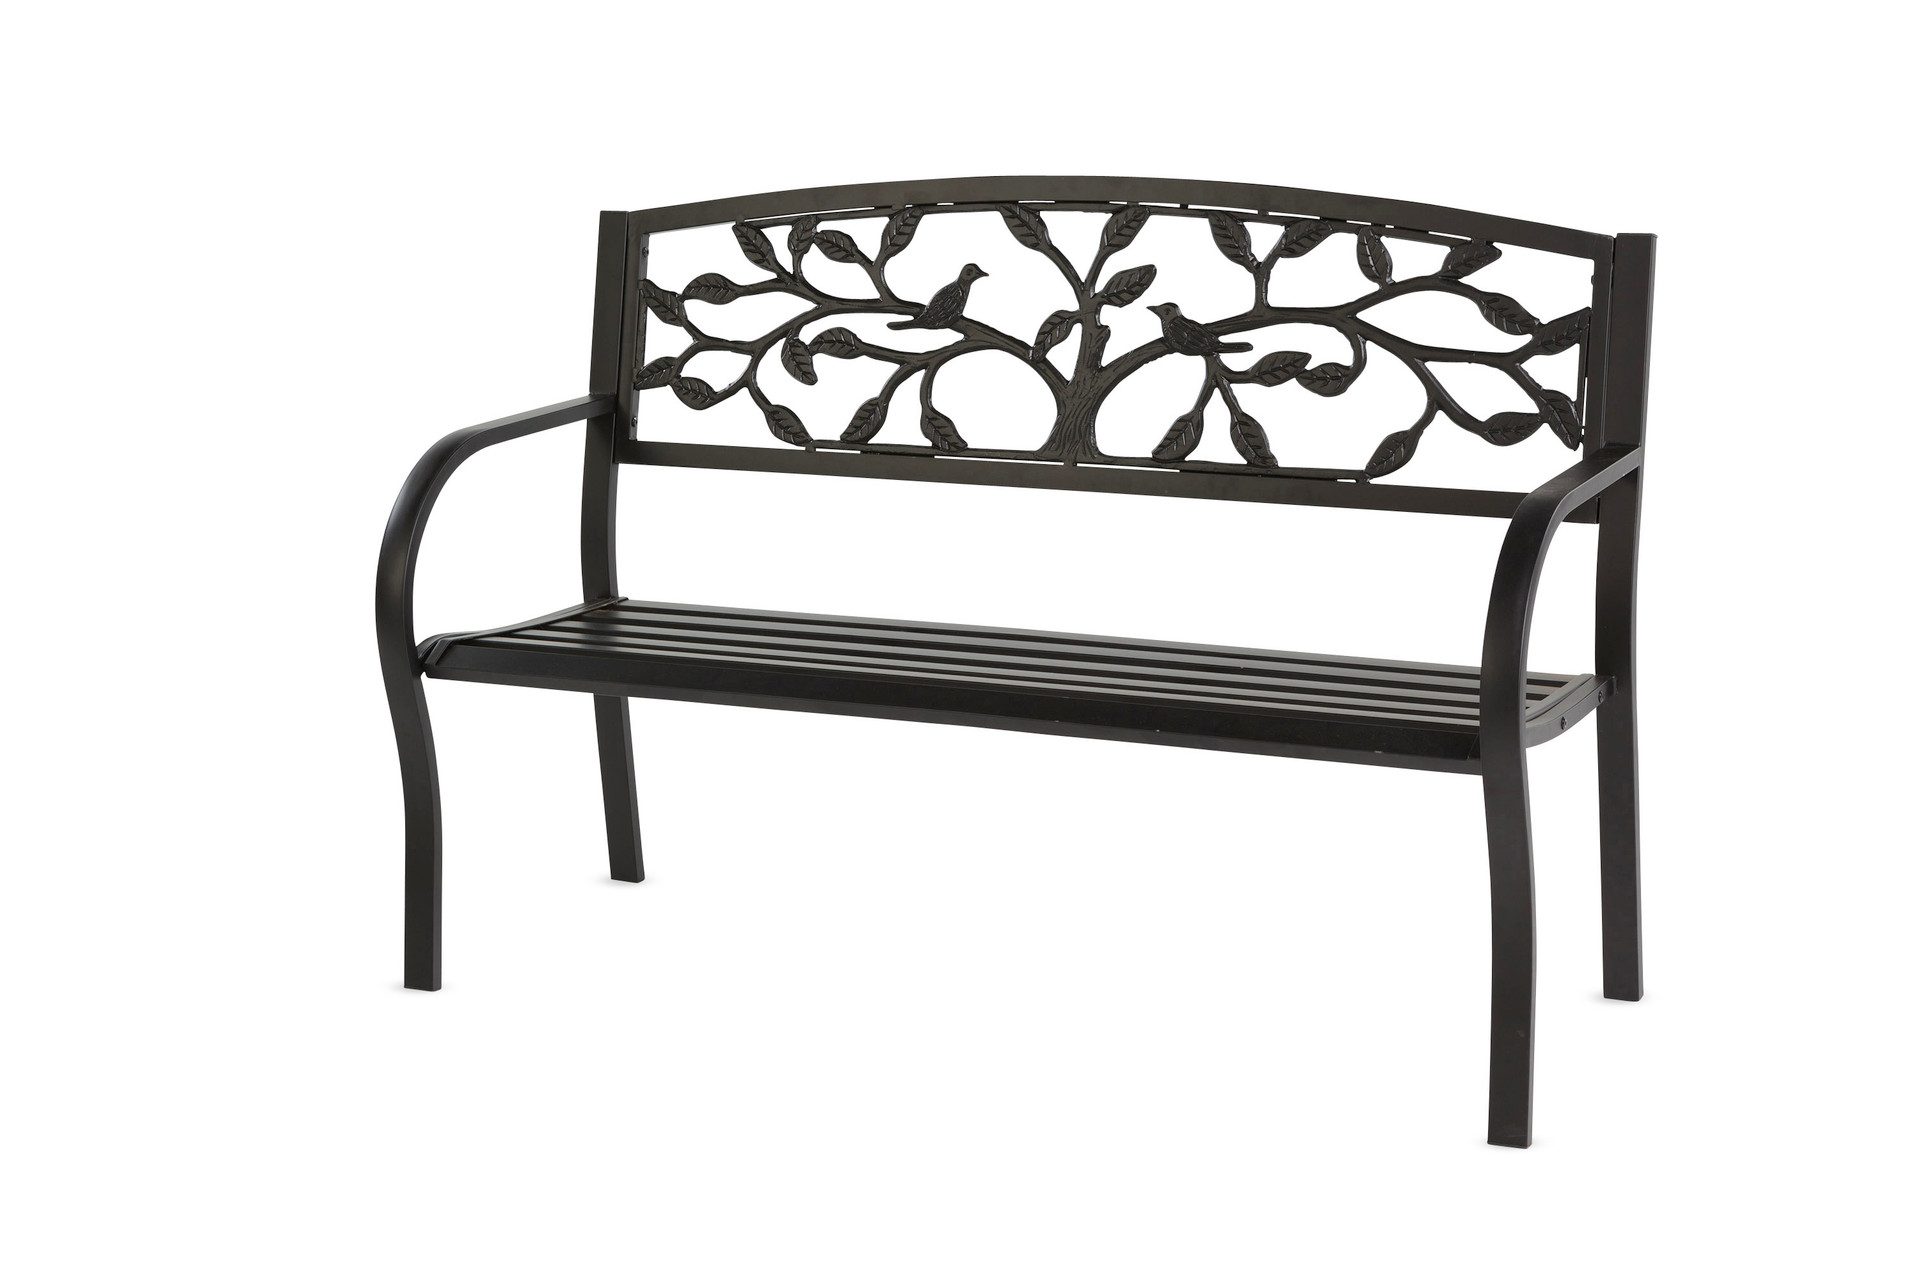 Tree Of Life Metal Garden Bench Black Trees N Trends Home Fashion More